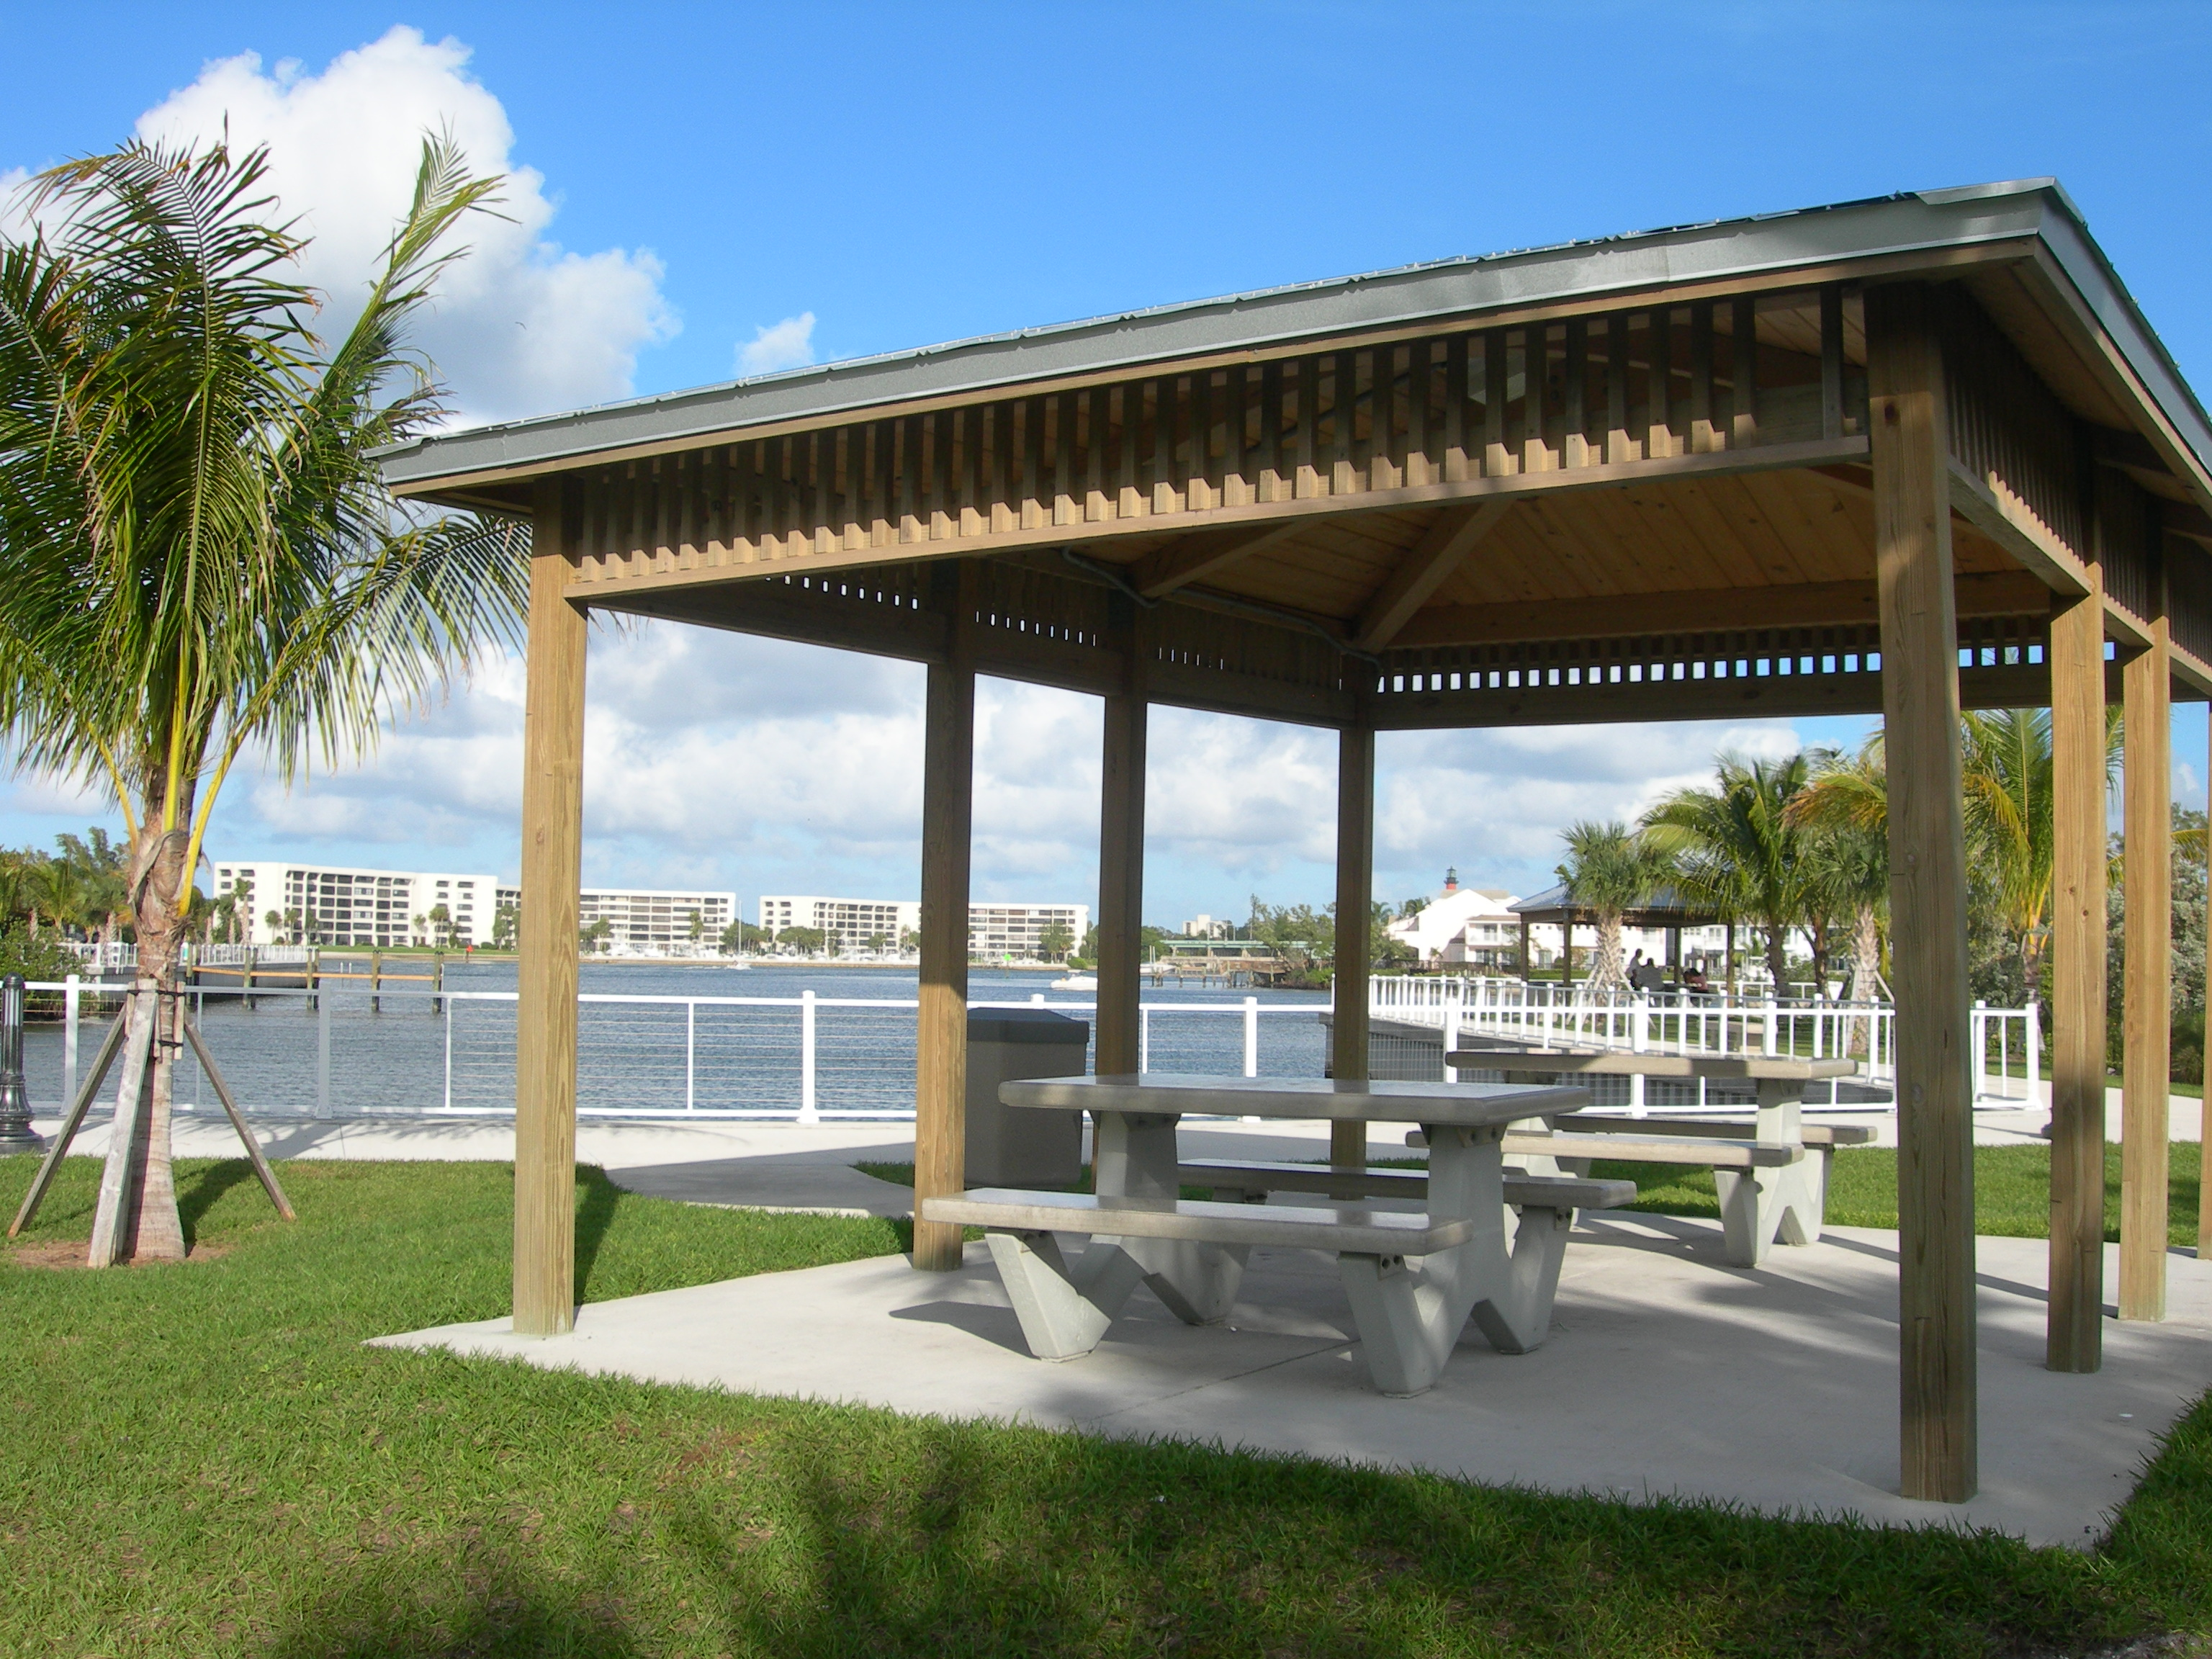 Pavilion at Sawfish Bay Park